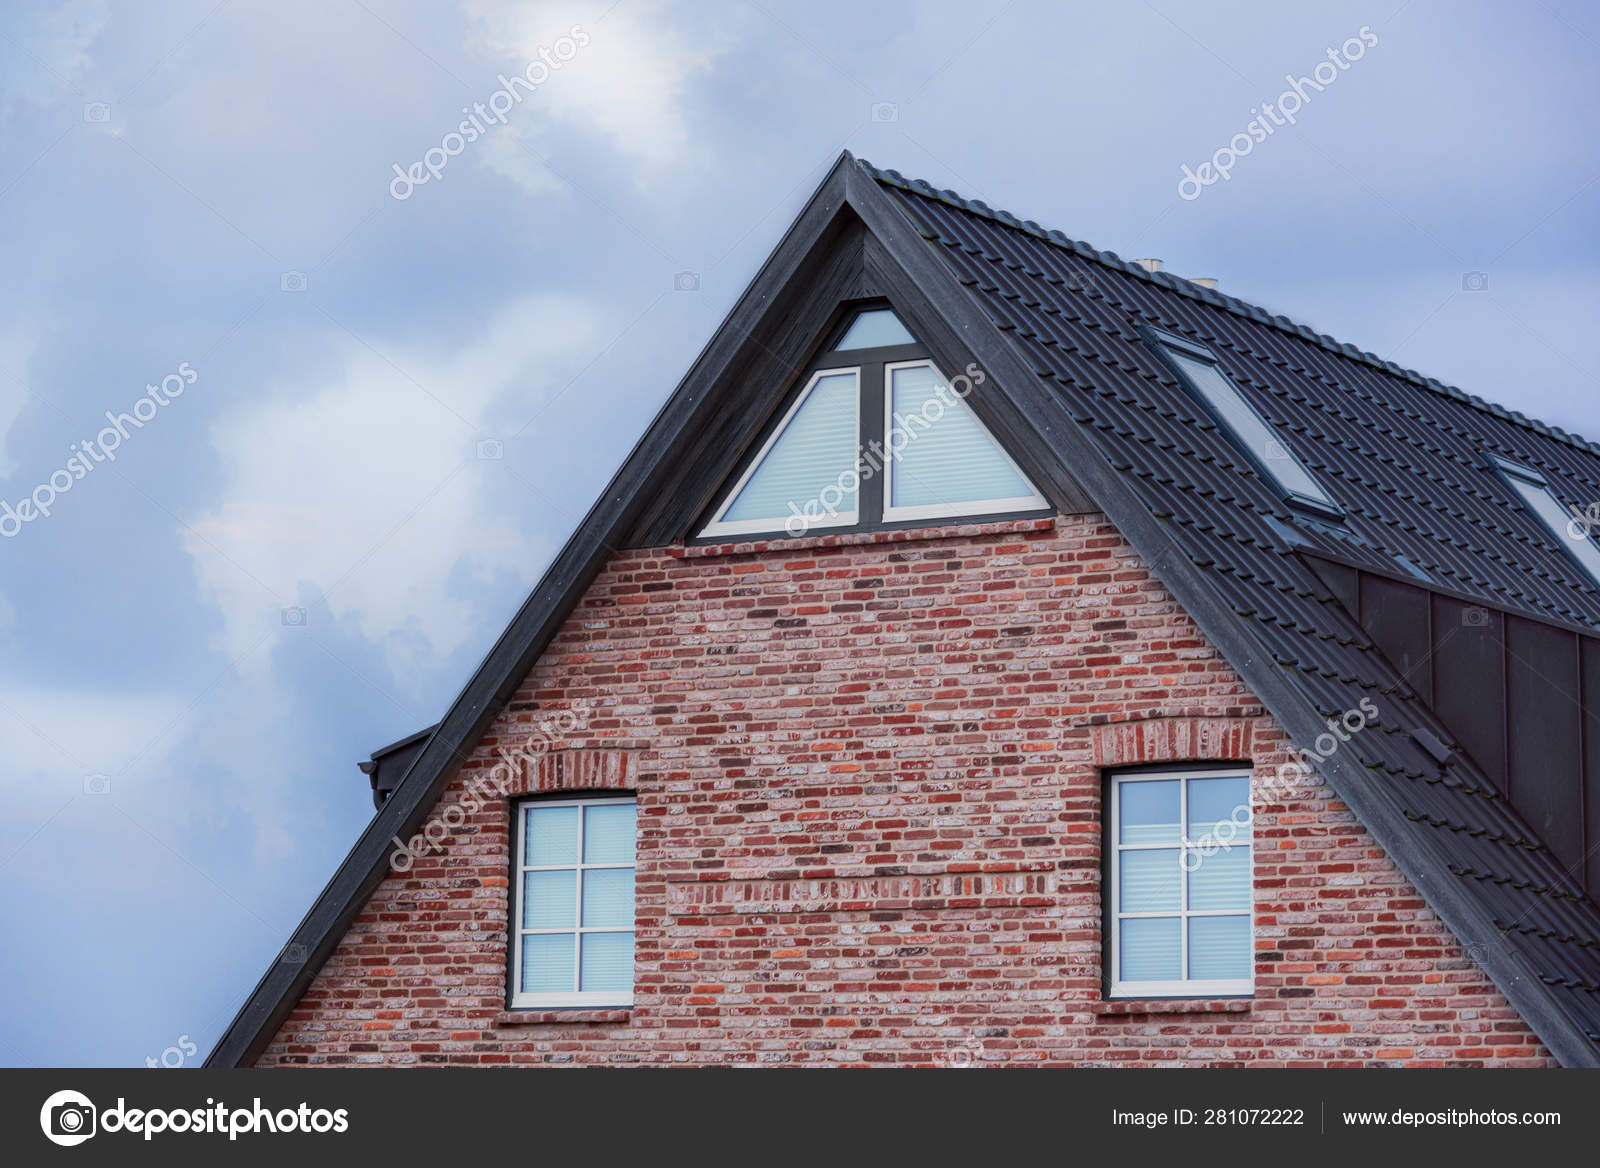 Frisian House Roof And Red Brick Wall Stock Photo C Yesphotographers 281072222